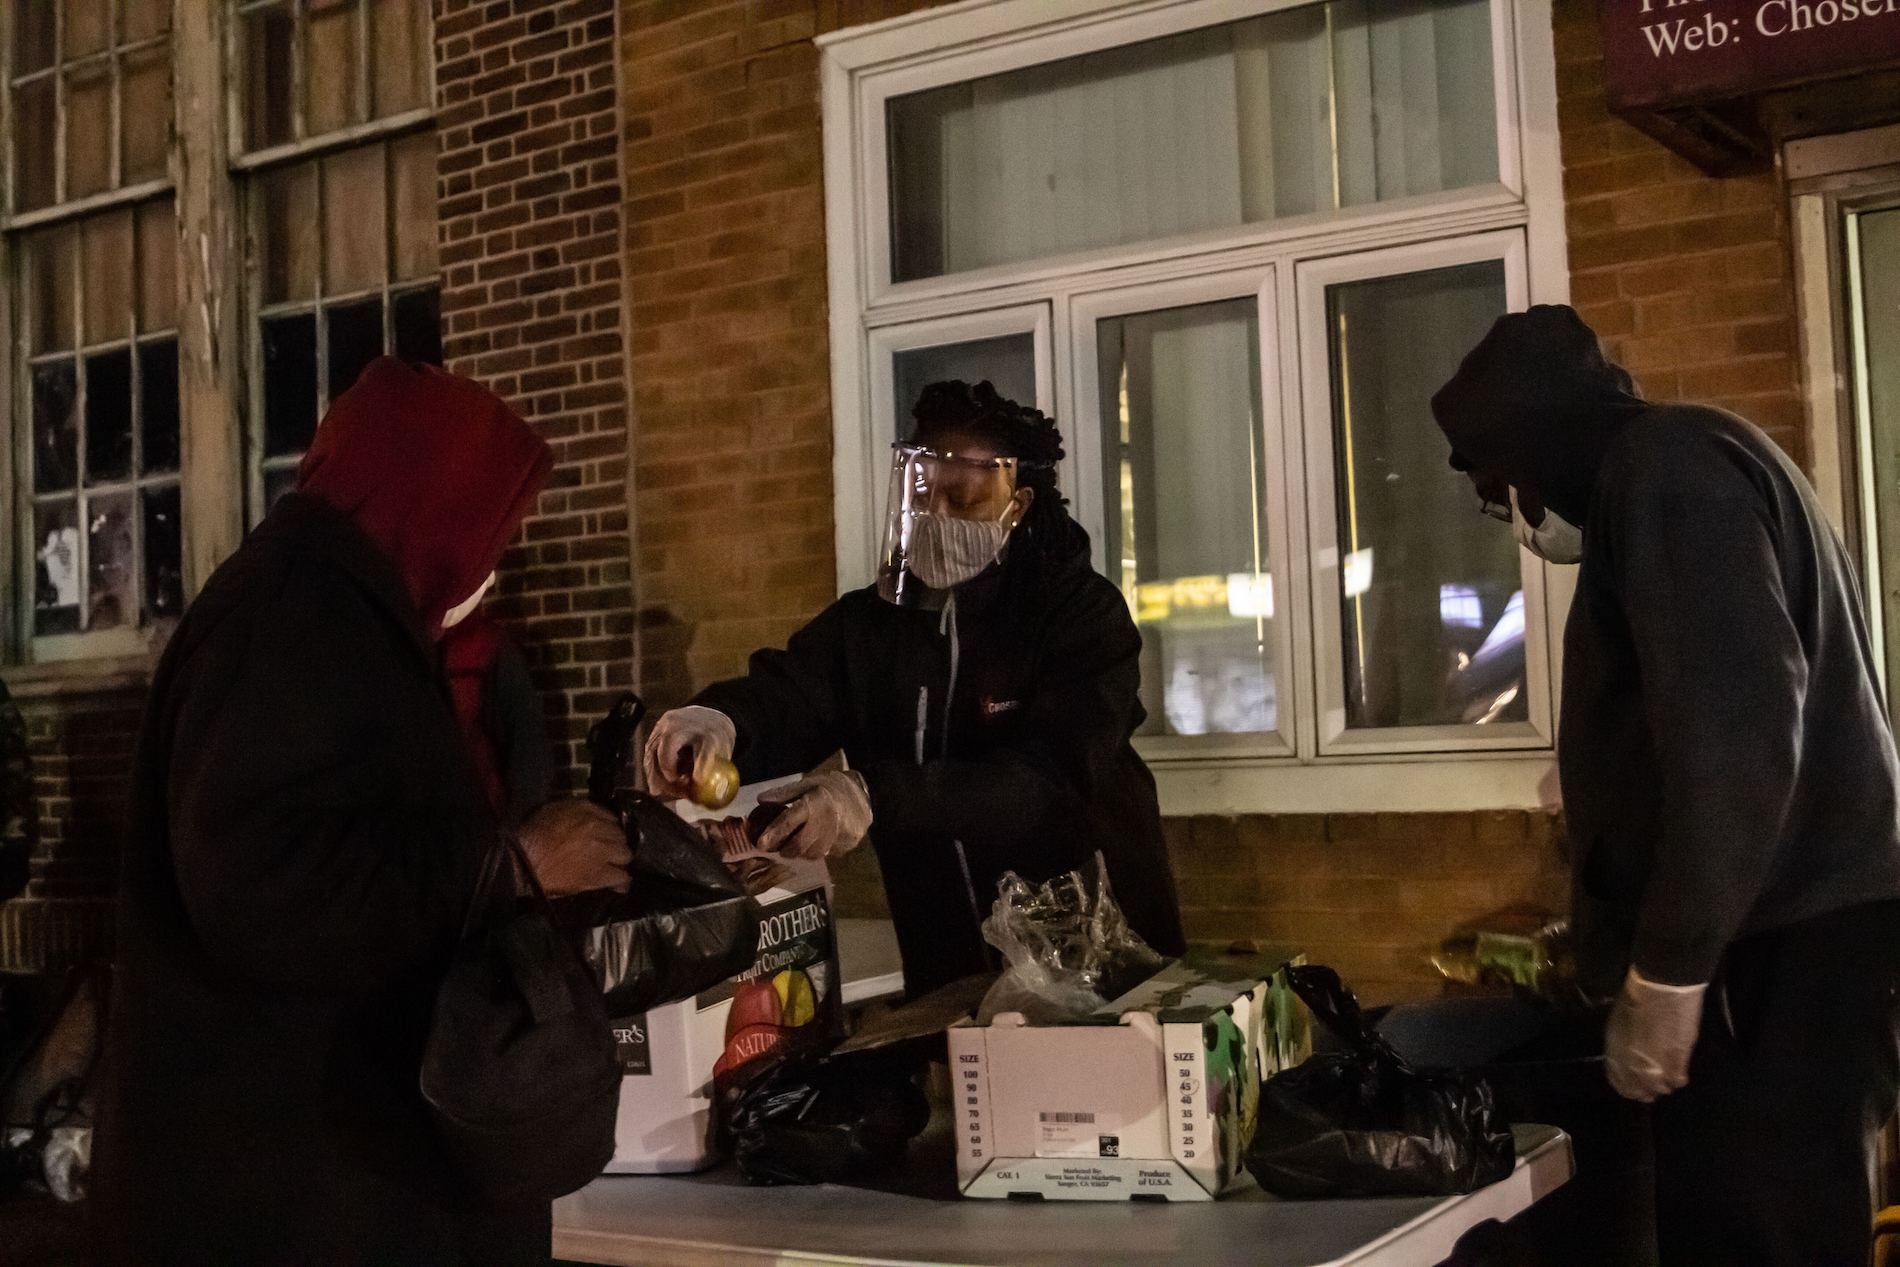 Sherica Douglas hands out fresh fruit with hot food at the Chosen 300 Ministries.